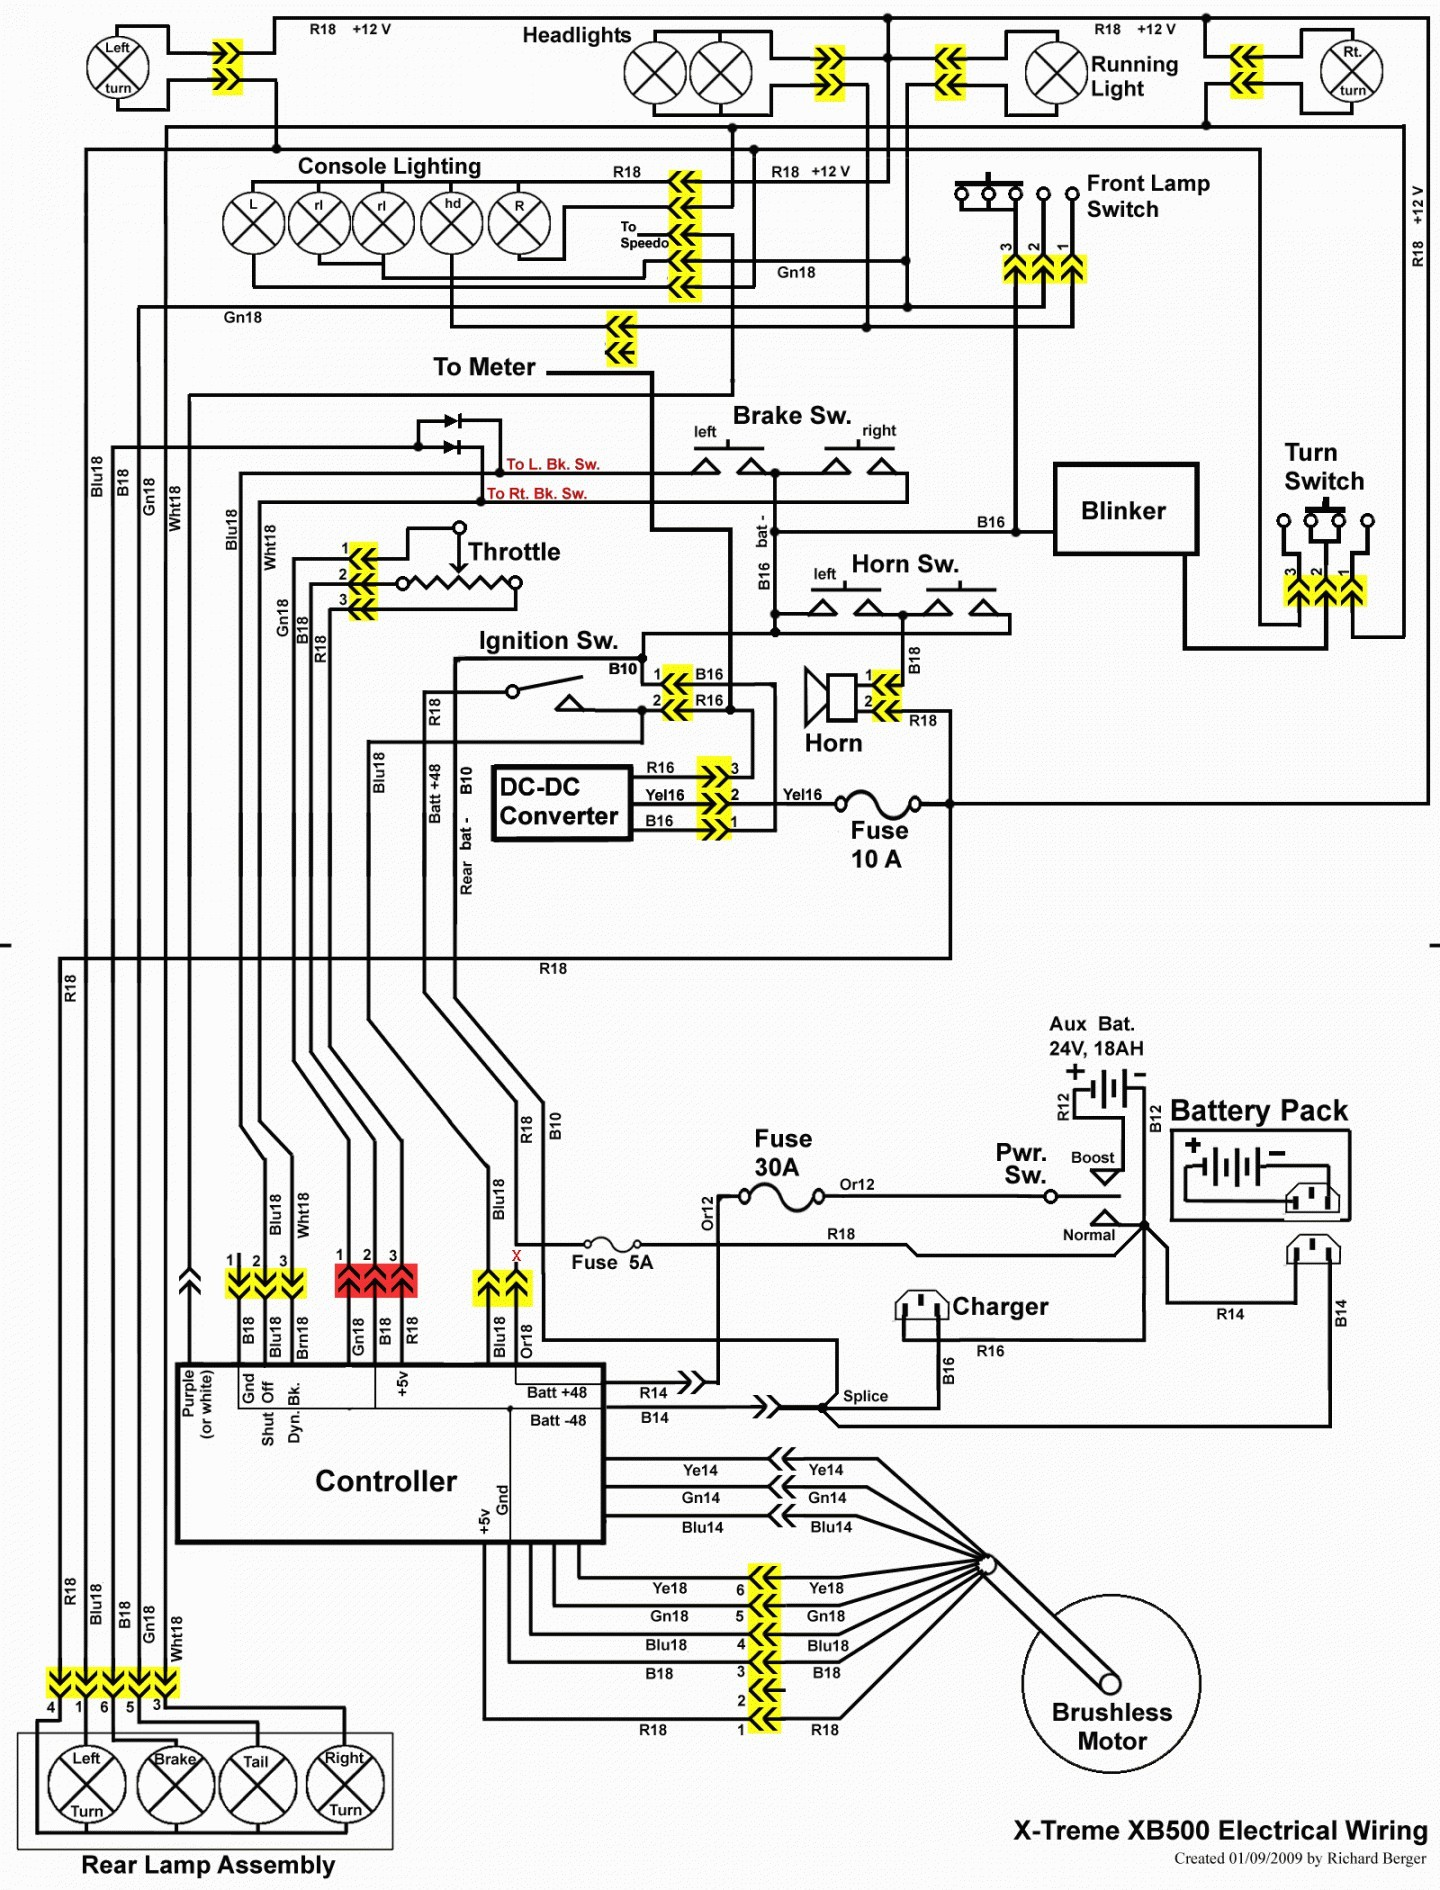 Tao Tao 50 Wiring Diagram | Wiring Diagram Kazuma Cc Wiring Diagram on sunl wiring diagram, nissan wiring diagram, falcon 110 wiring diagram, evinrude wiring diagram, hunter wiring diagram, kawasaki wiring diagram, toyota wiring diagram, kia wiring diagram, dodge wiring diagram, international wiring diagram, bajaj wiring diagram, freightliner wiring diagram, 110cc 4 wheeler wiring diagram, viking wiring diagram, chevrolet wiring diagram, electrical outlet wiring diagram, smc wiring diagram, jeep wiring diagram, honda wiring diagram, new holland wiring diagram,